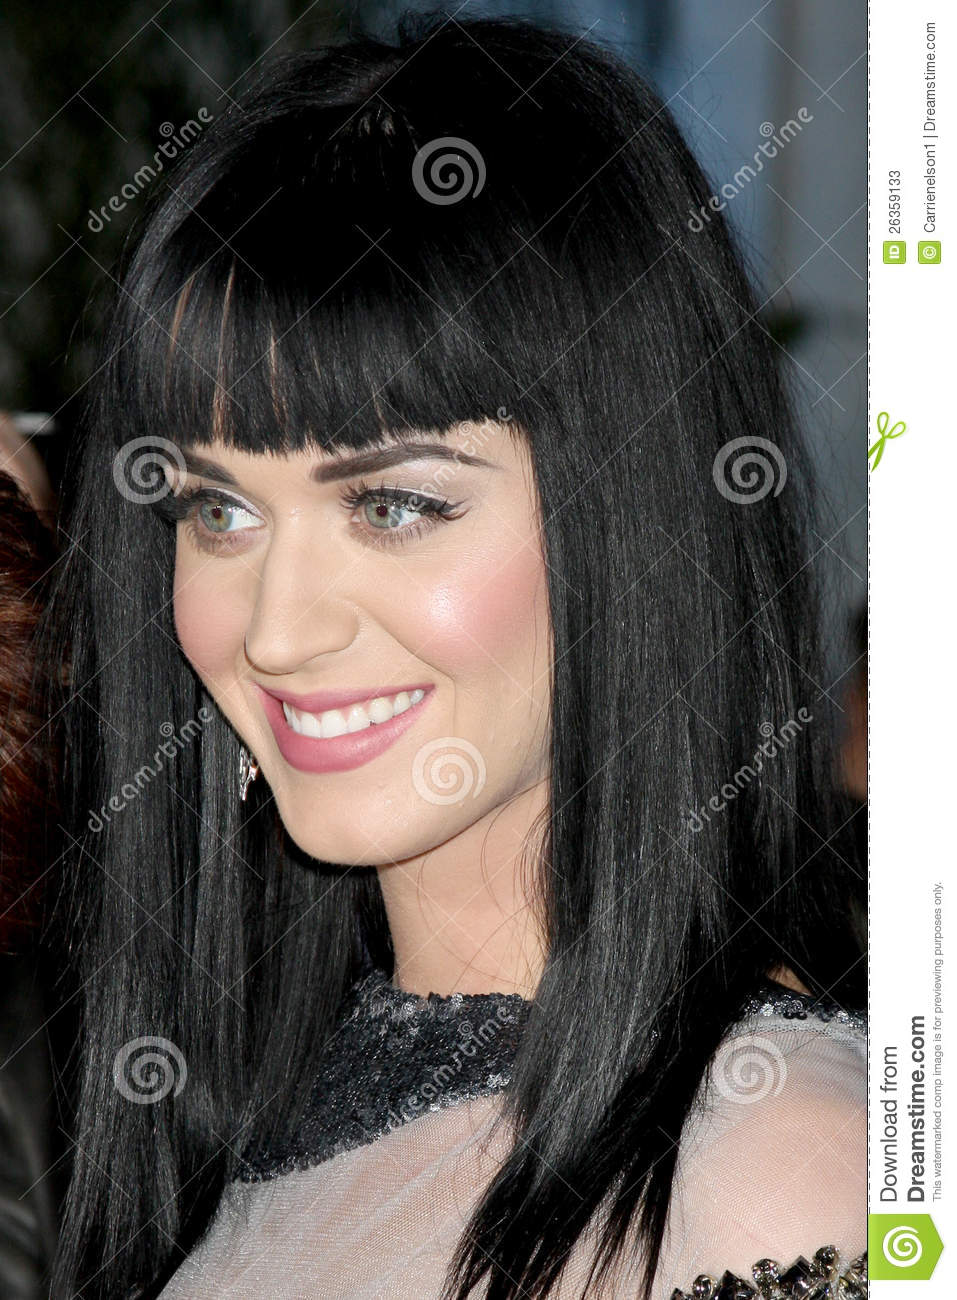 Katy Perry, Katie Perry